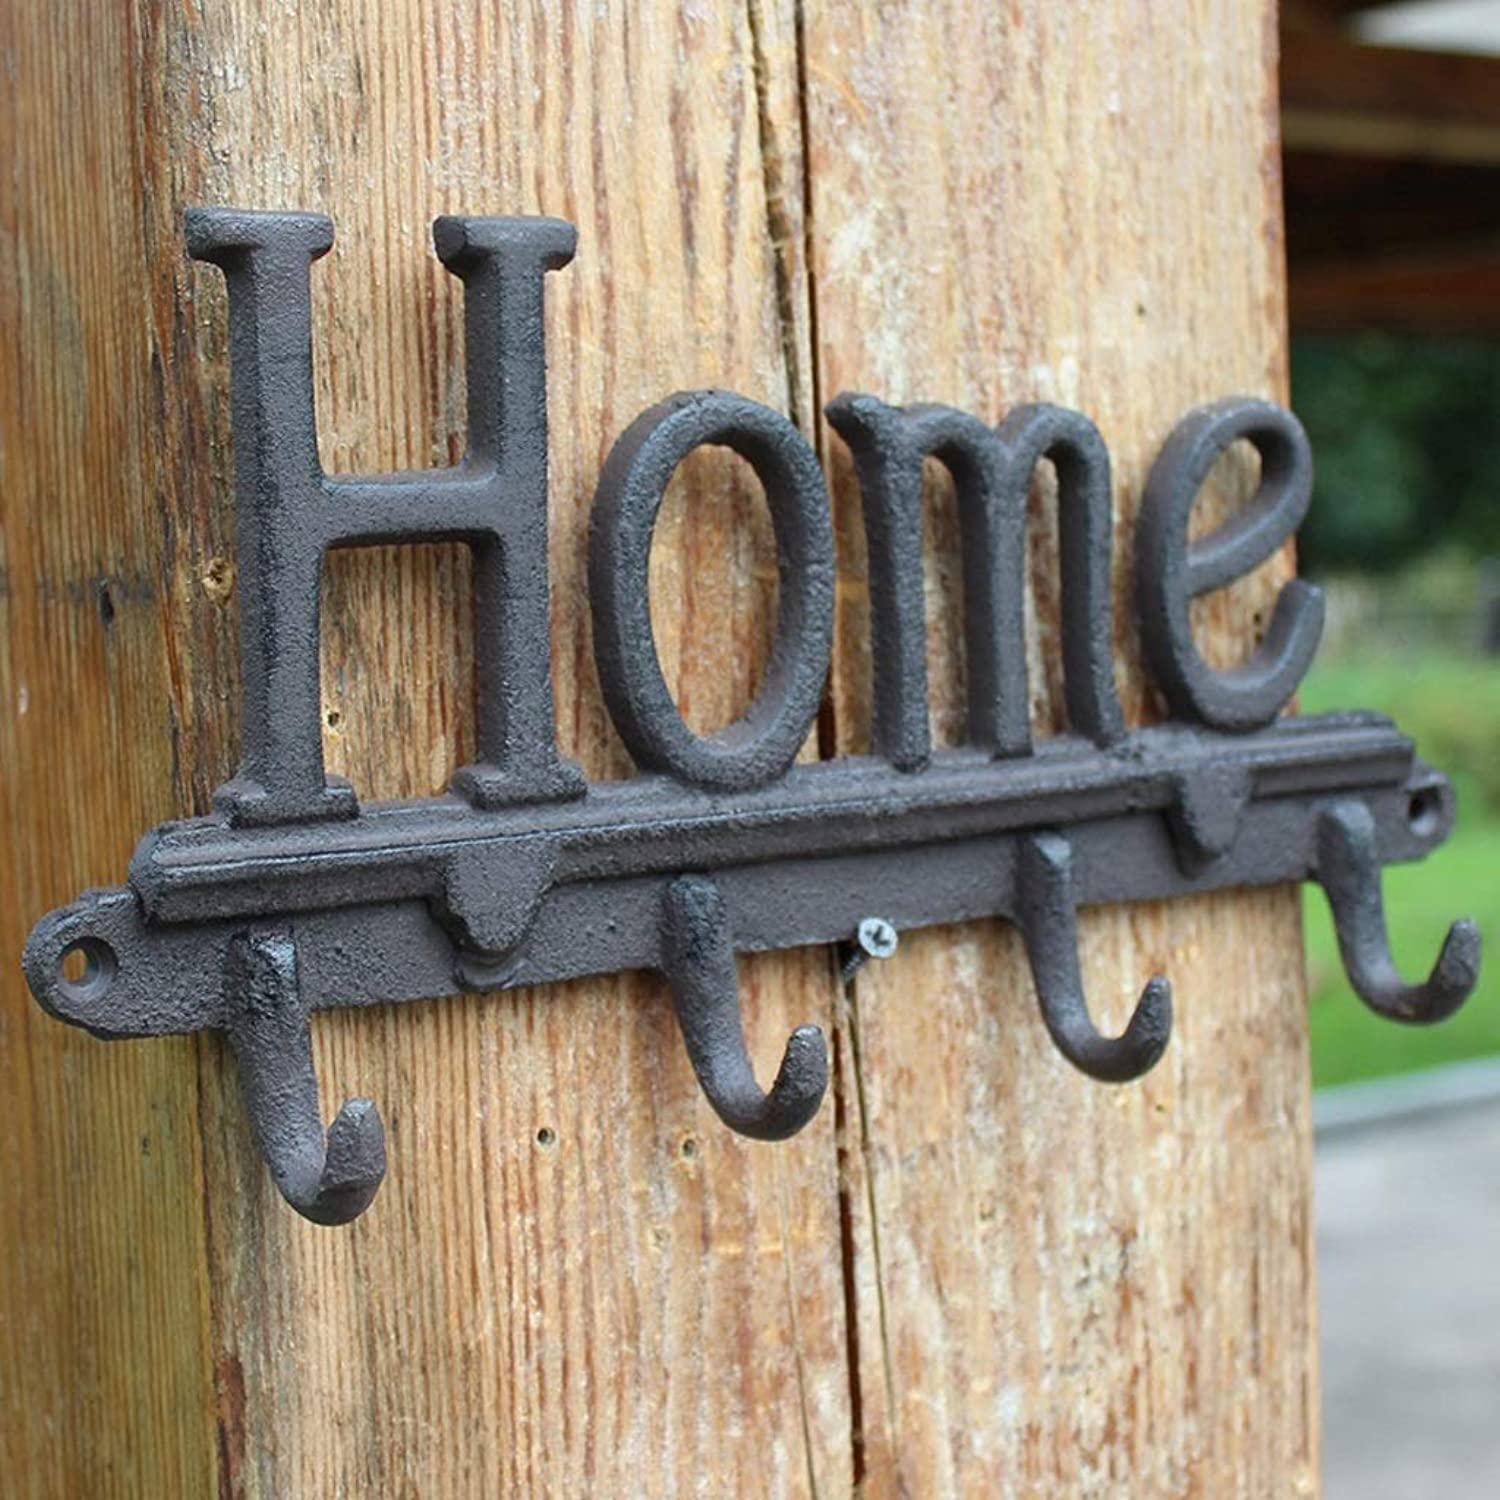 XUYRENP Retro Country Industrial Wind Cast Iron Hook Crafts Wall Hangings Home Home Decoration